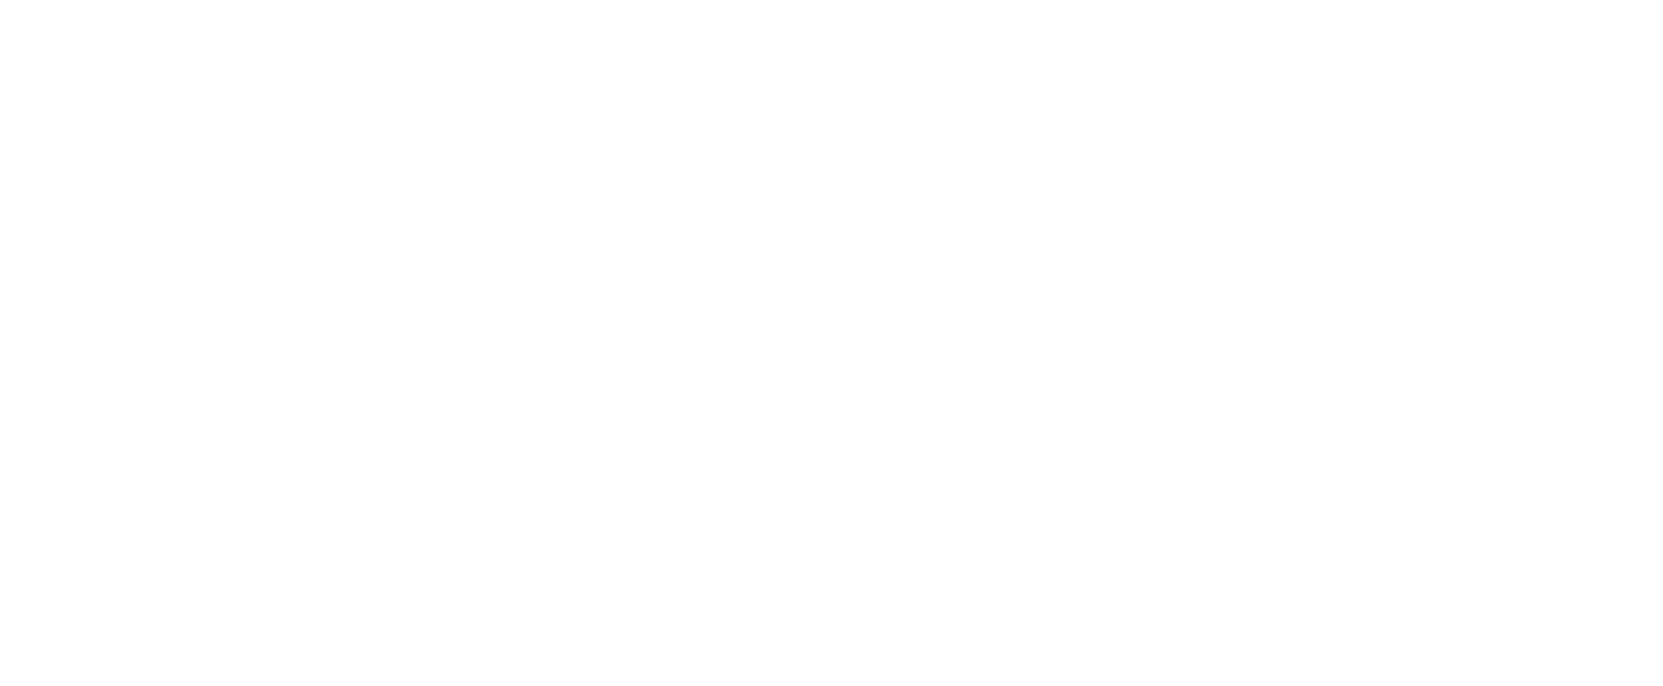 4MAX Information Systems